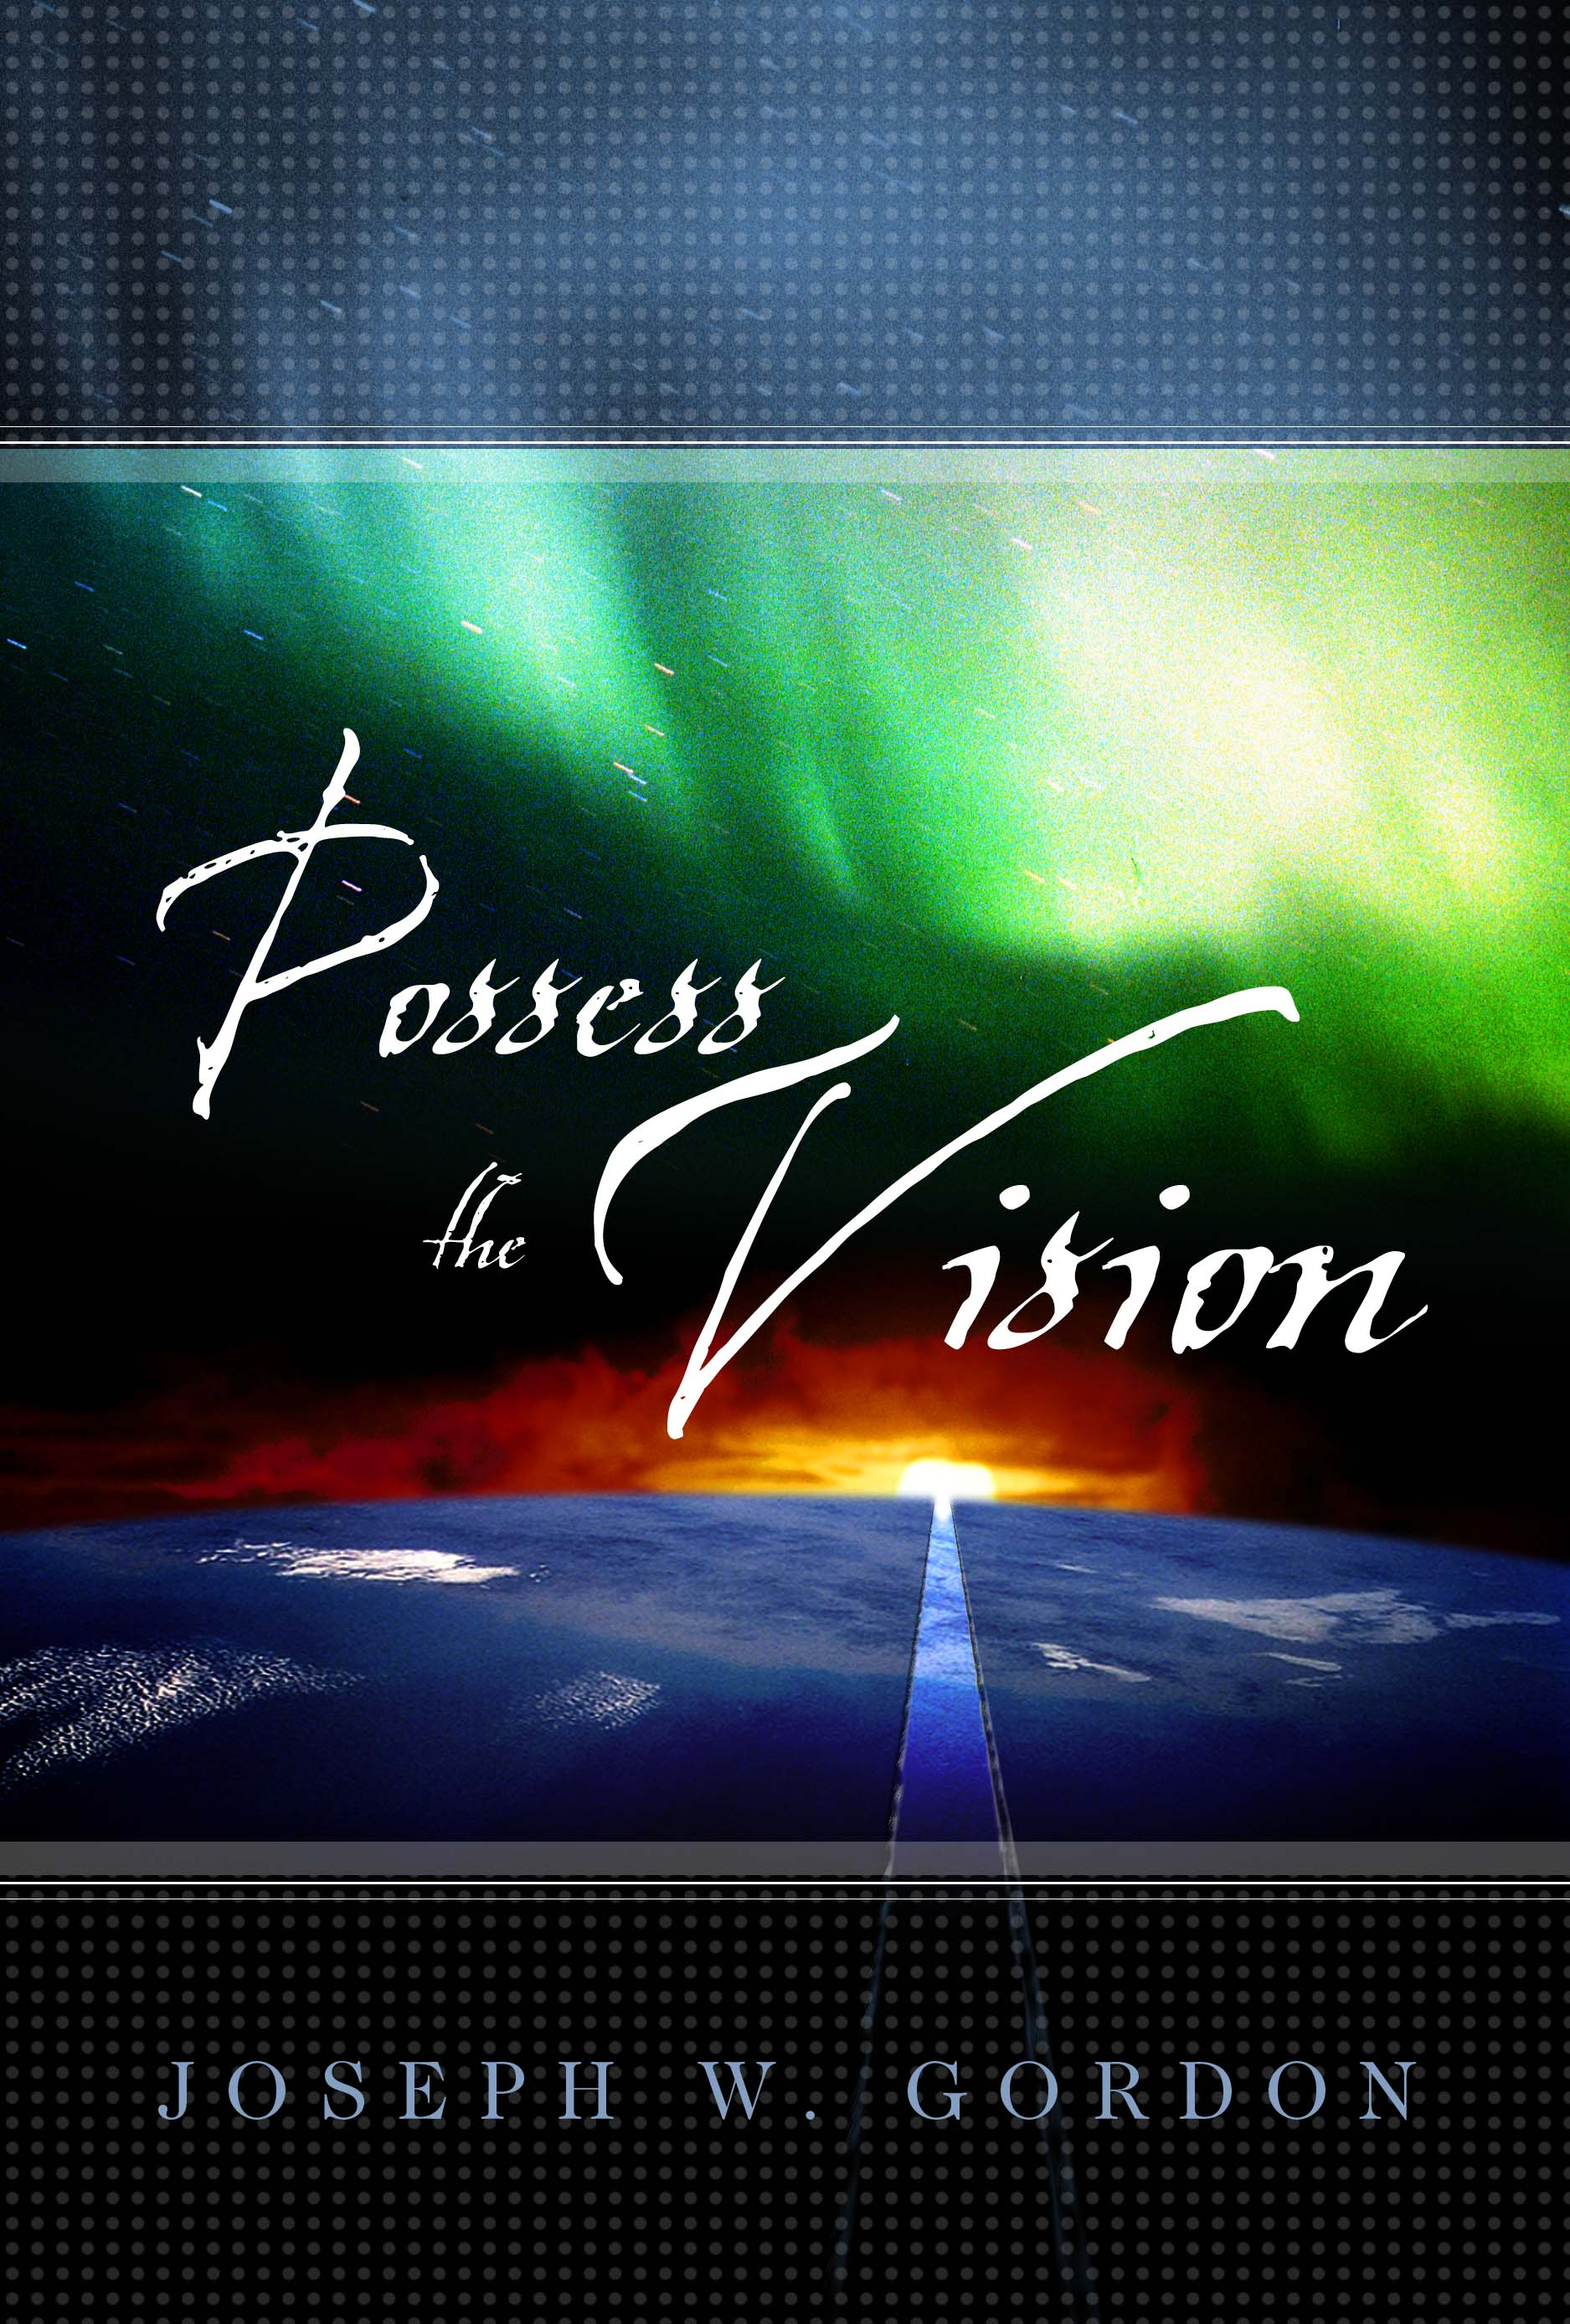 possess-the-vision-front02.jpg